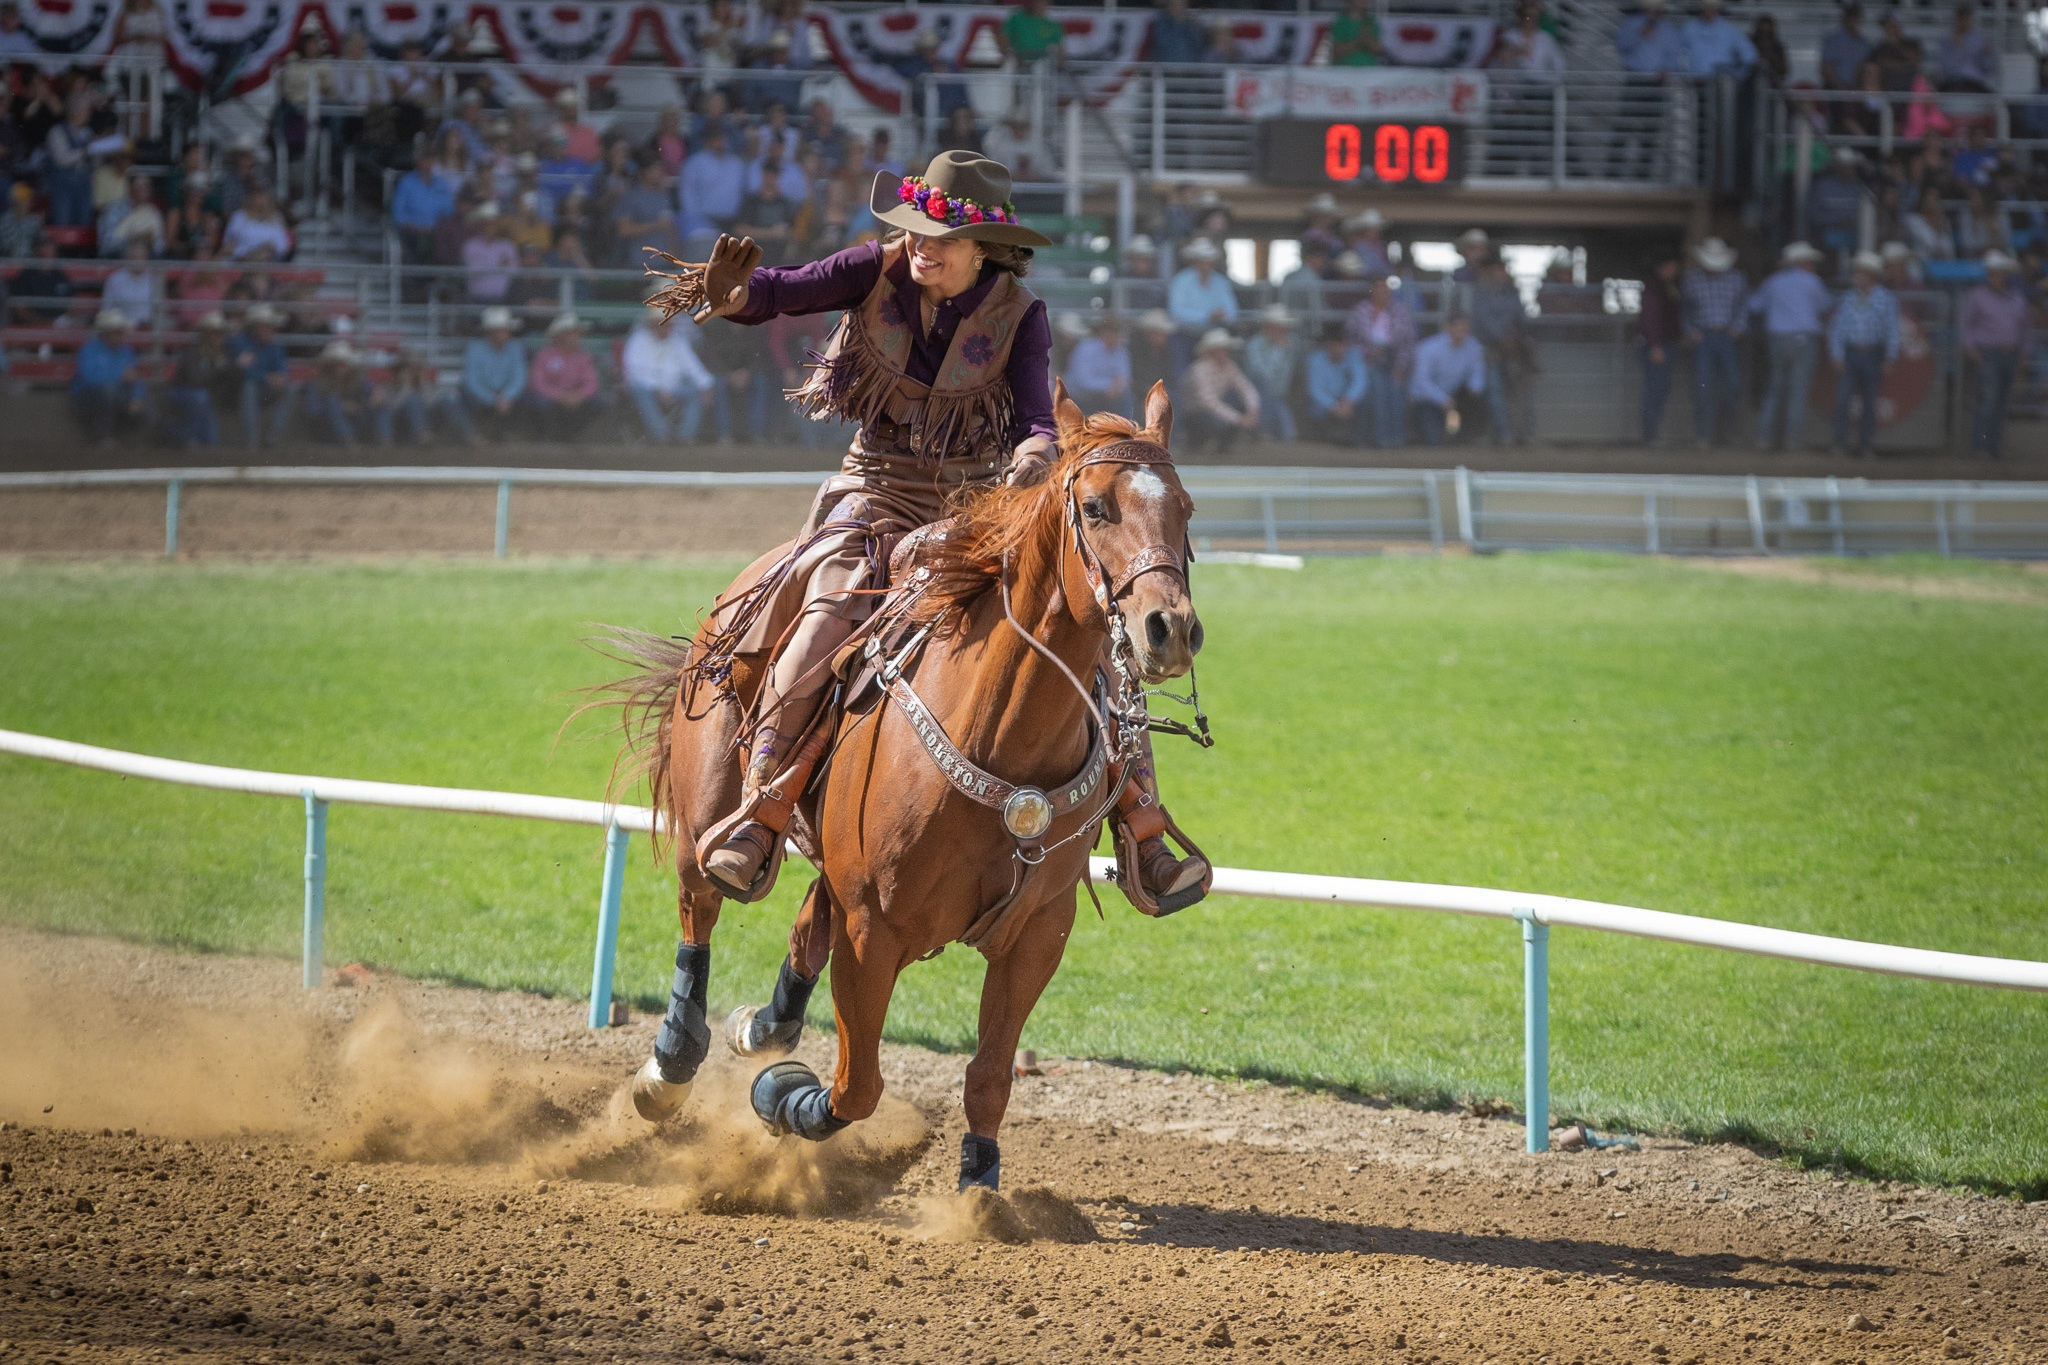 """Janet Herbes - """"Vince took some great shots of my daughter who was a princess in the Royalty Court at the Pendleton Round-Up, and he was very kind about sending me some proofs."""""""